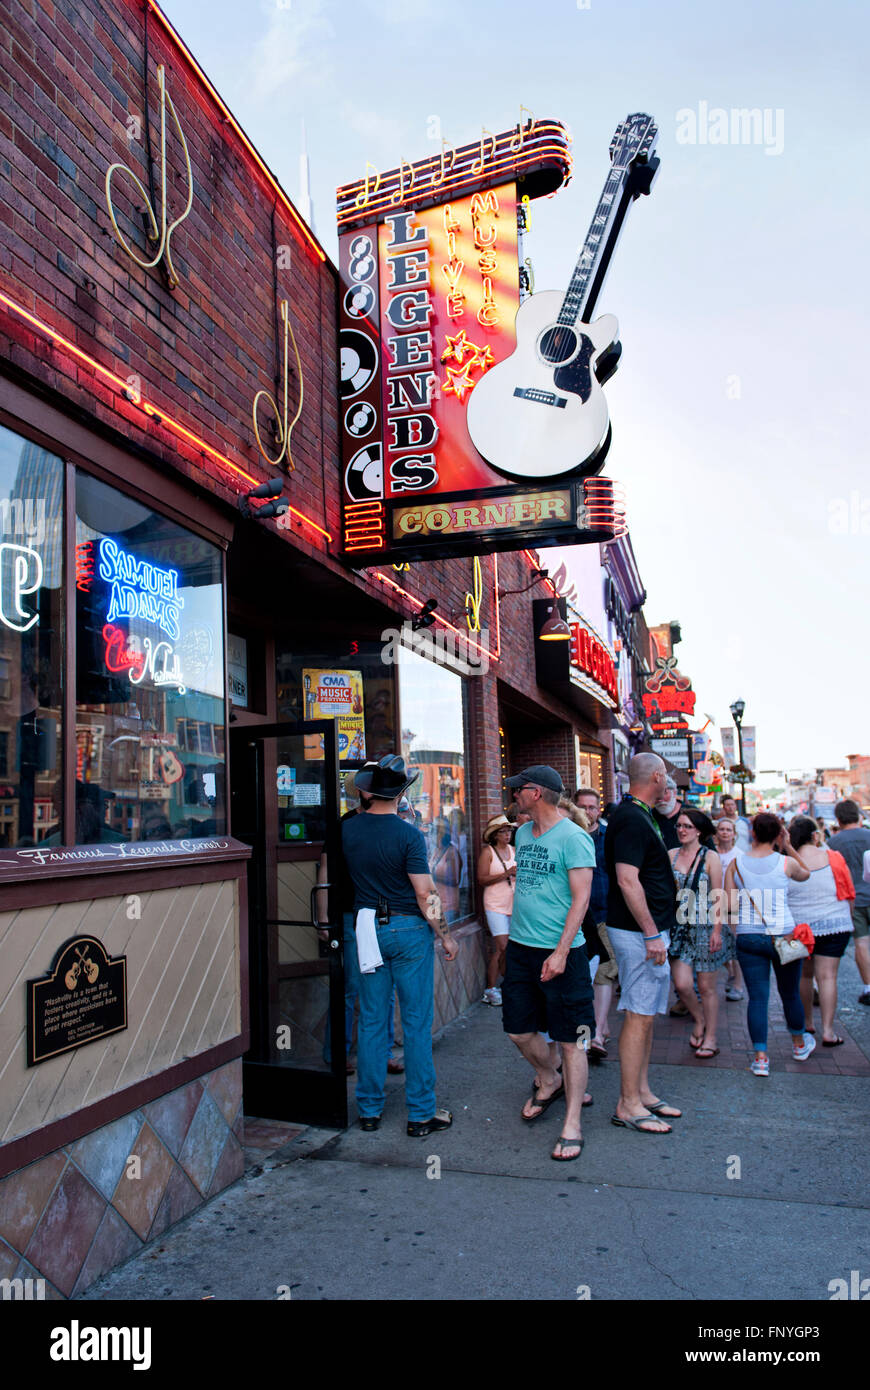 Legends Corner a popular restaurant / bar in Nashville Tennessee - Stock Image